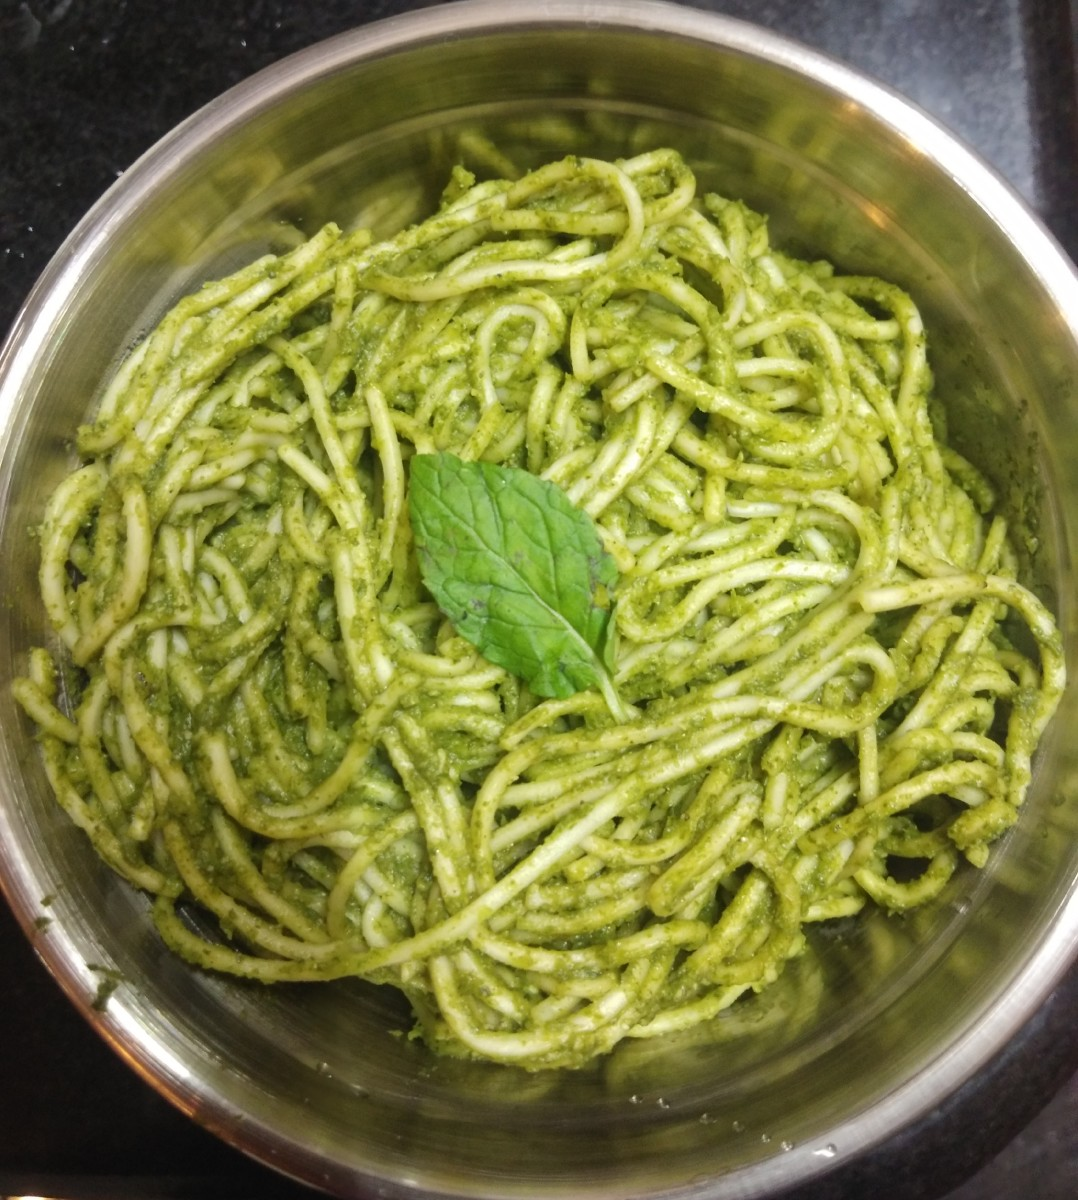 Green Noodles, or Noodles With Mint Paste